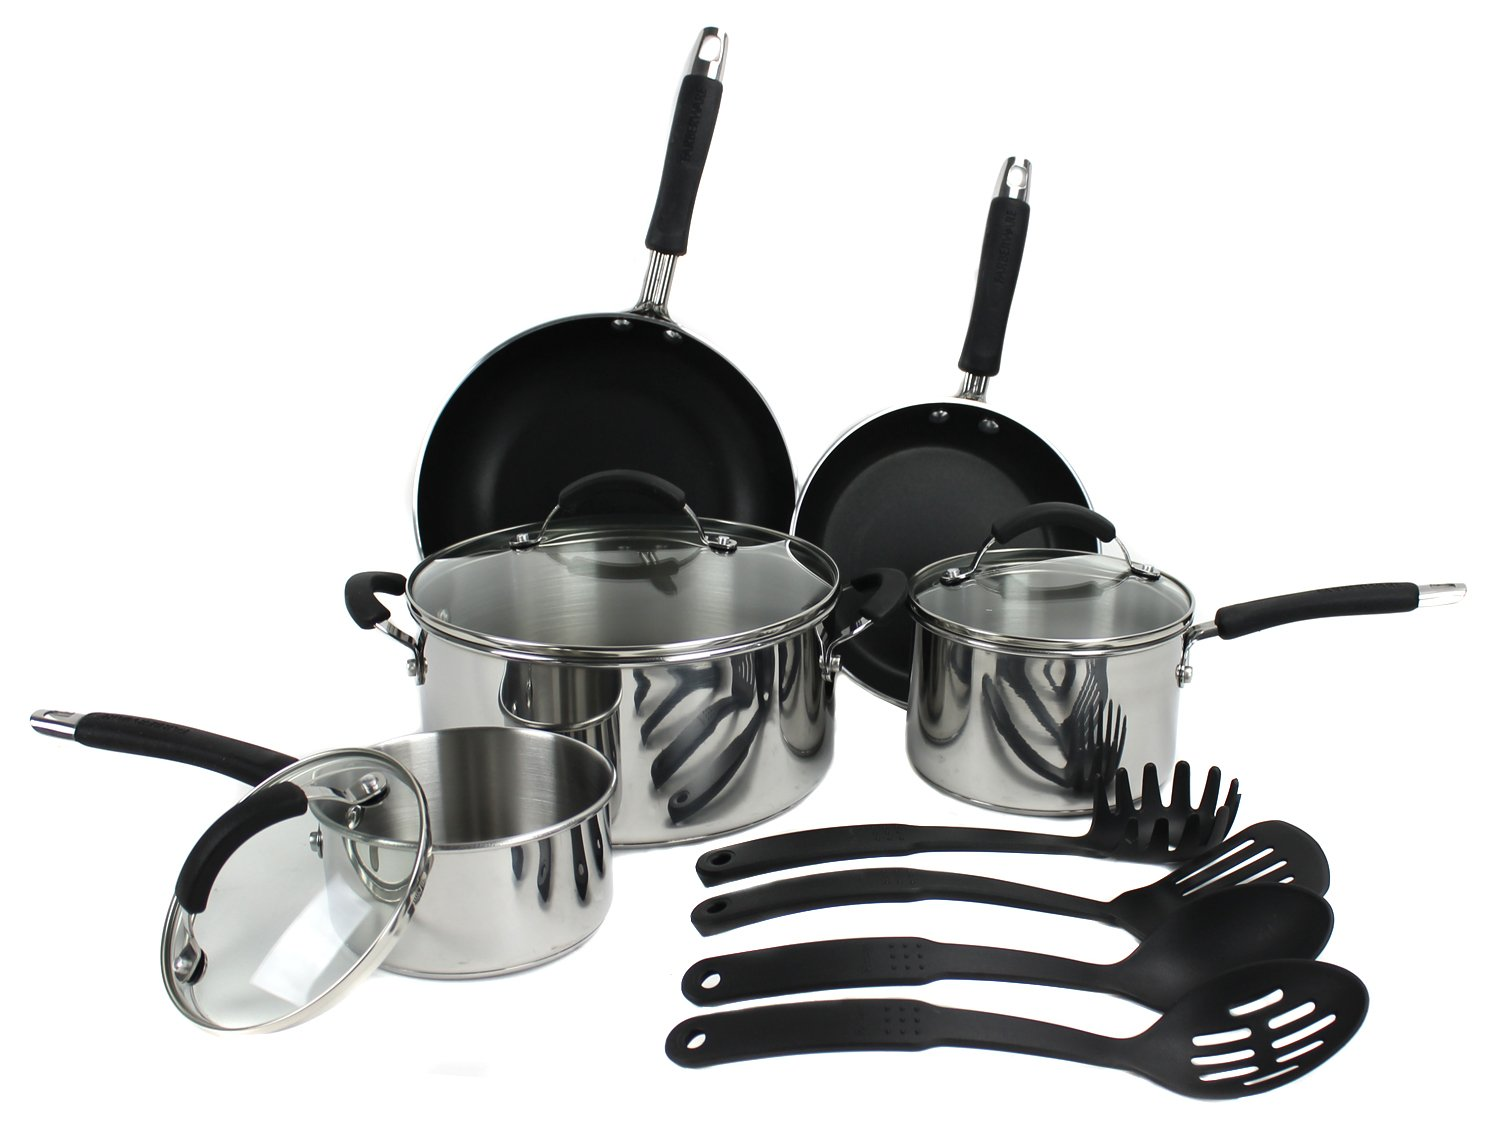 Amazon.com: Farberware 12-Piece Non-Stick Cookware Set, Stainless ...